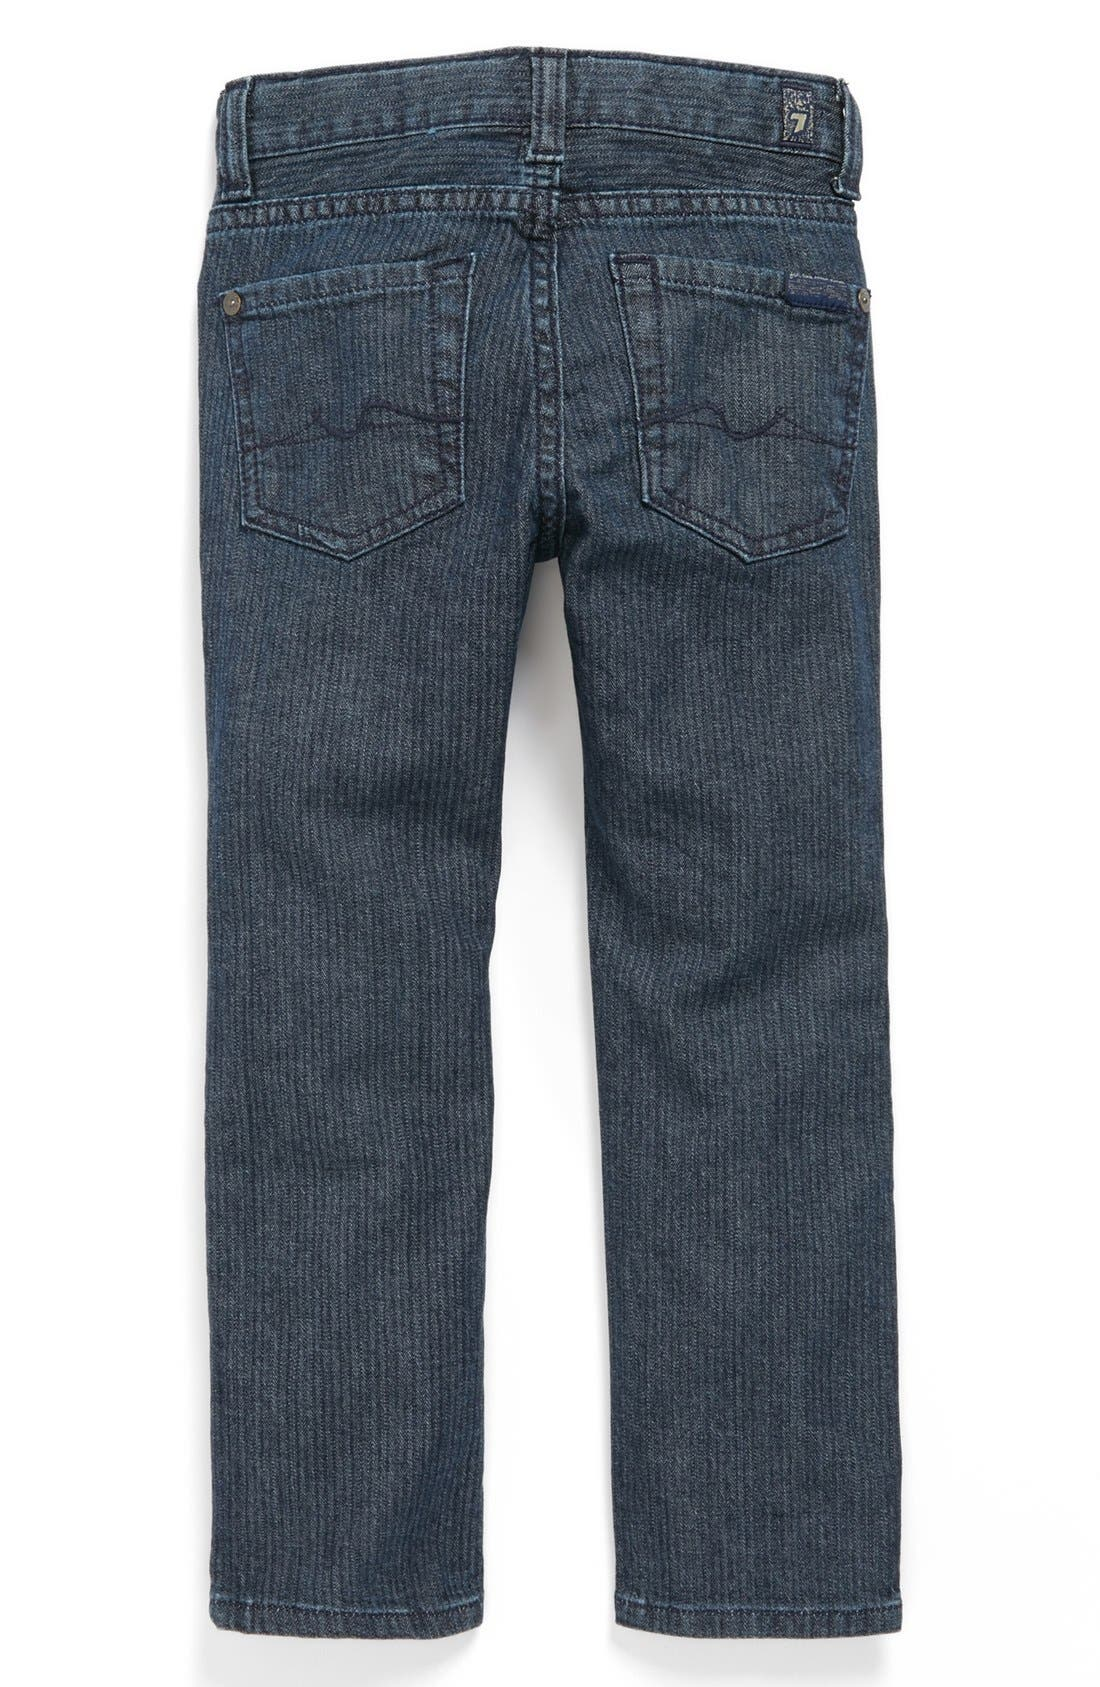 Alternate Image 1 Selected - 7 For All Mankind® 'Slimmy' Herringbone Slim Fit Jeans (Toddler Boys)